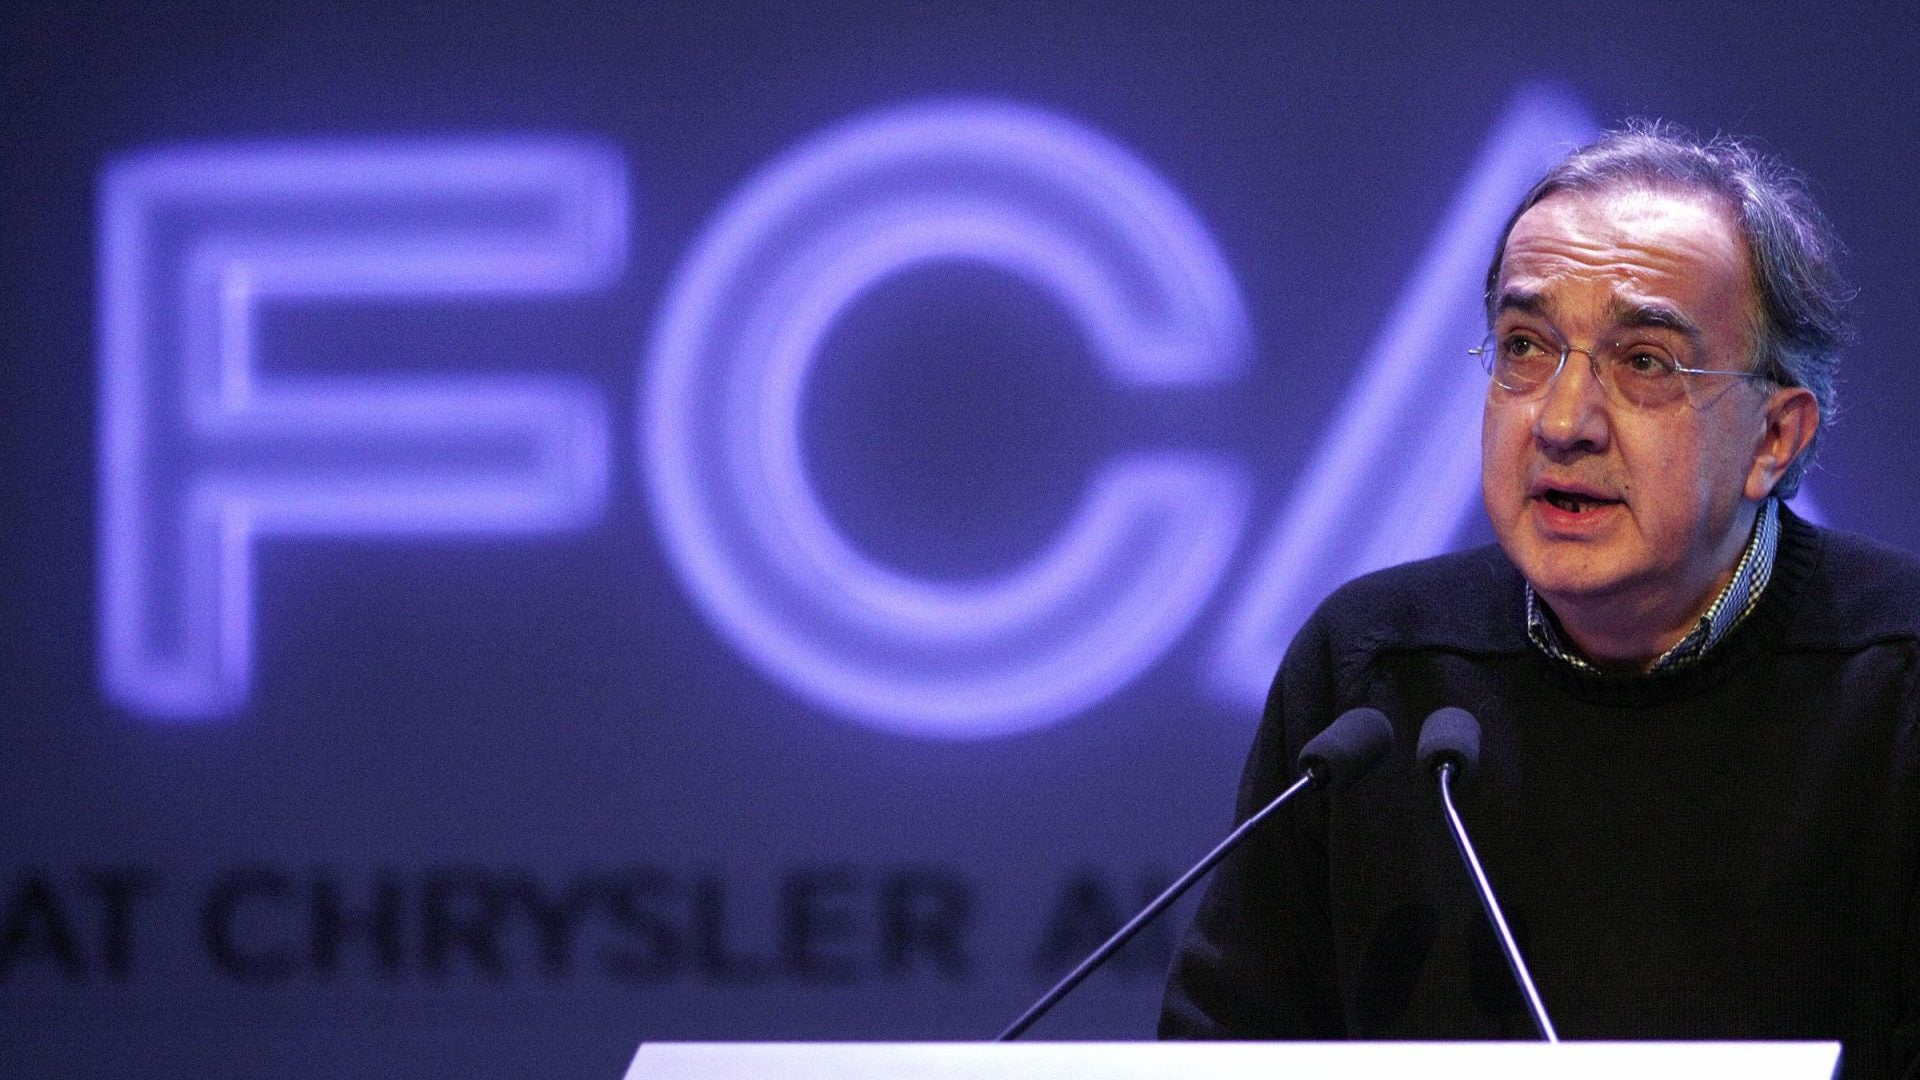 Chrysler CEO Marchionne Addresses Company's 2014 Investor Day